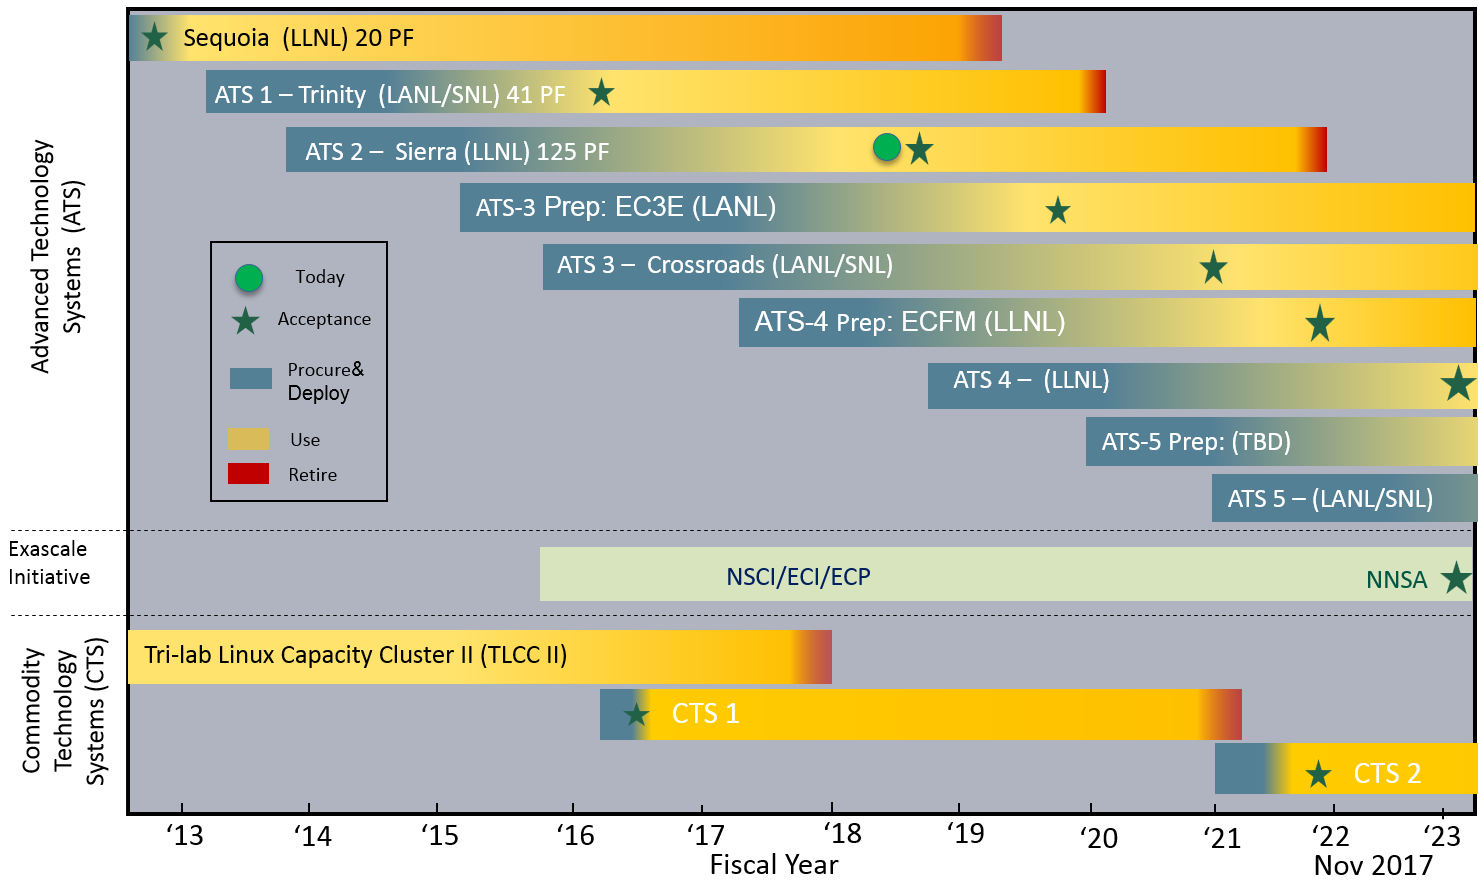 timeline of CTS and ATS procurements at national labs